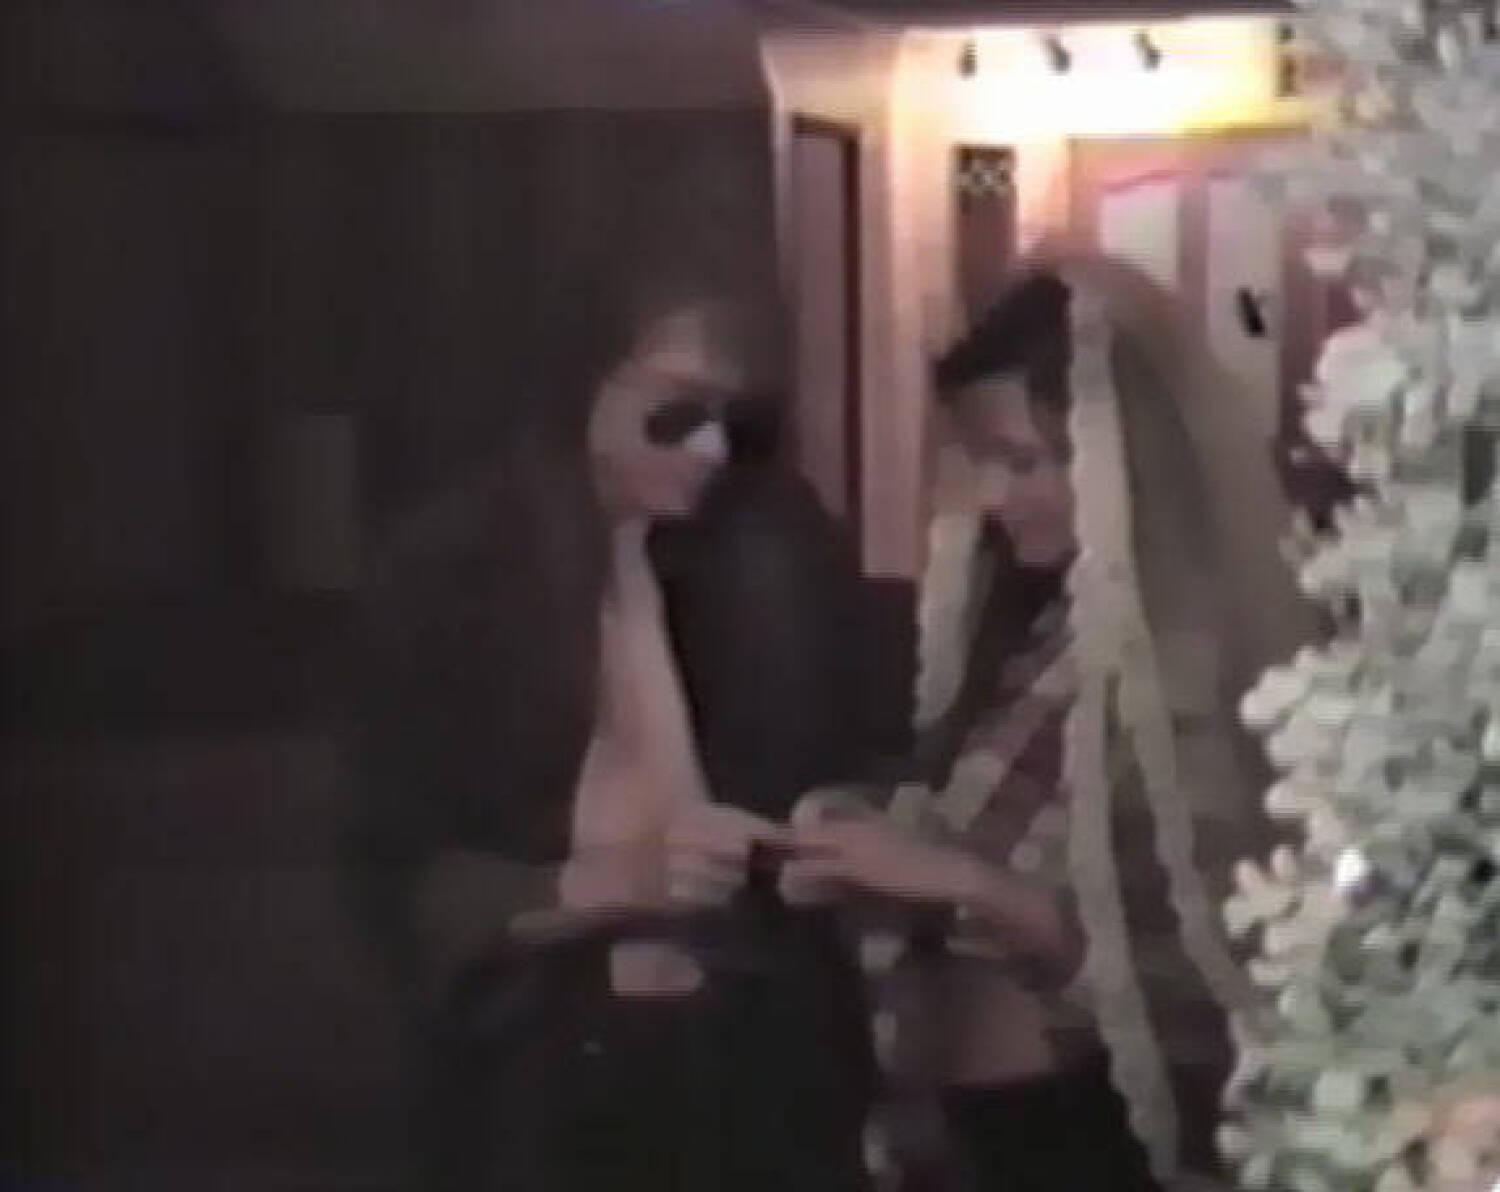 axl rose and erin everly wedding video current price 1500